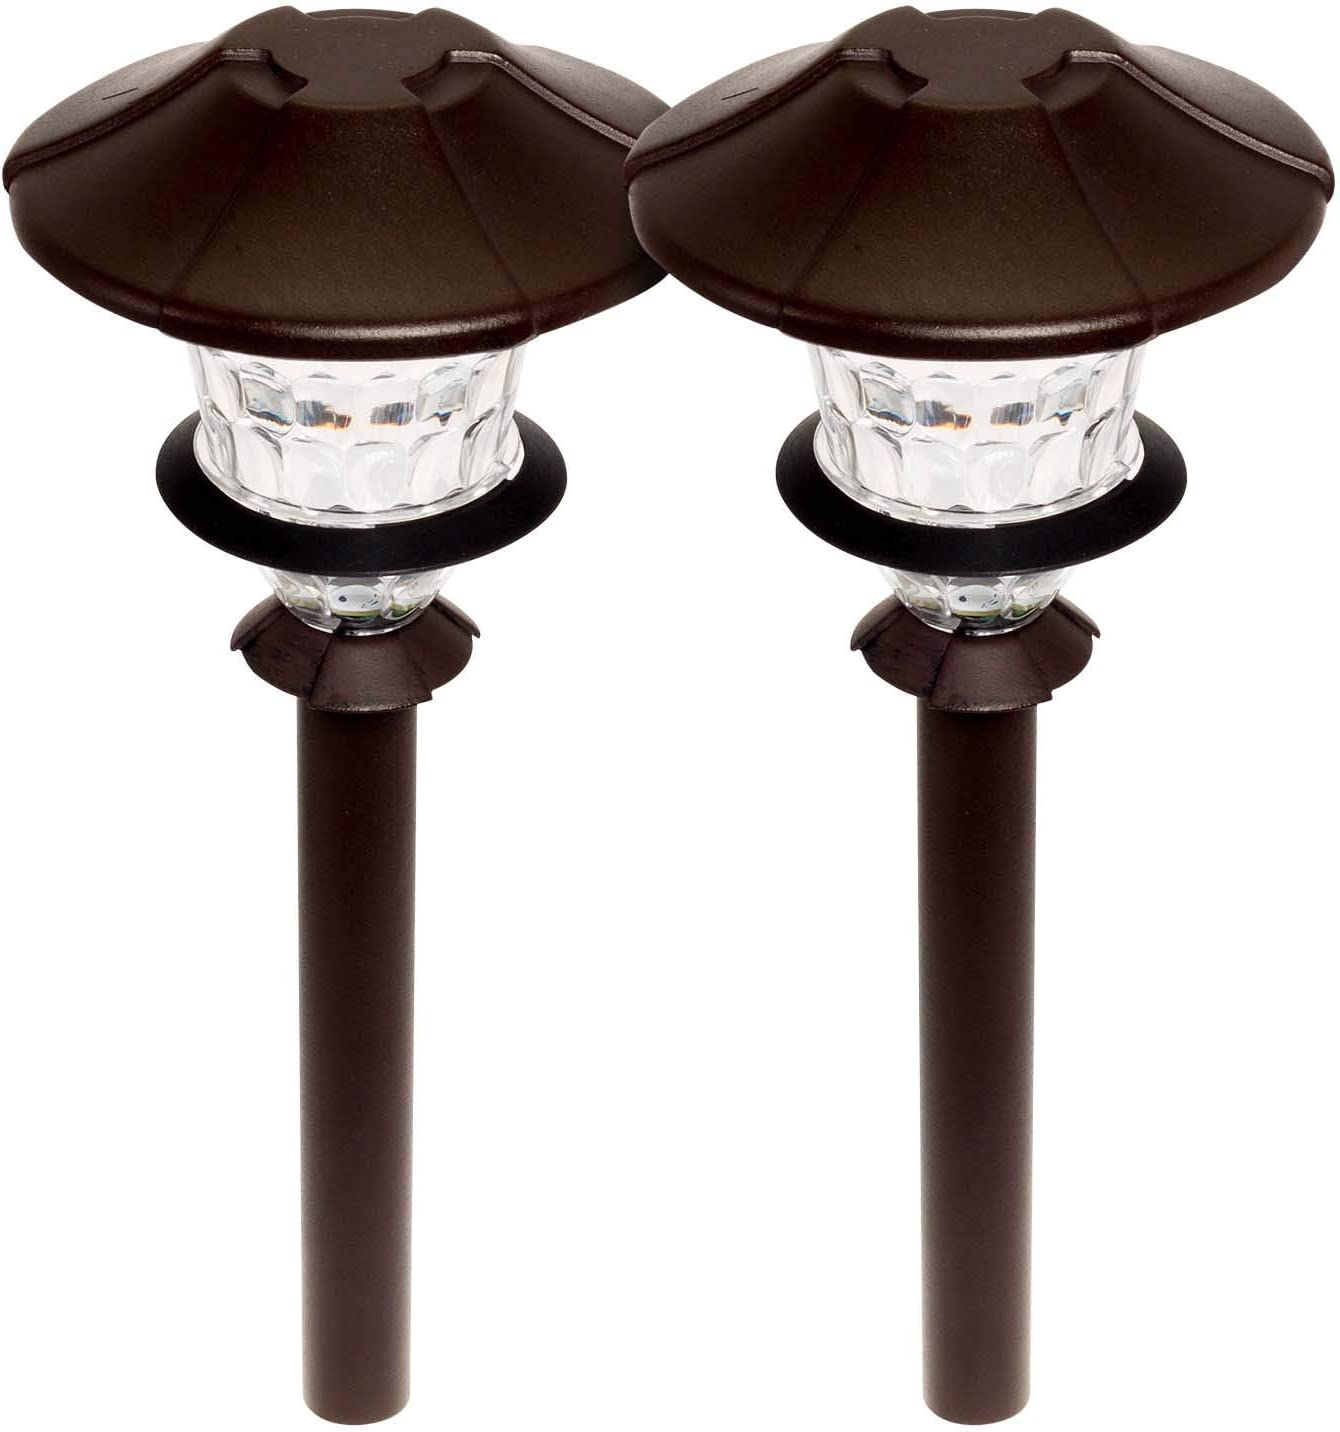 Paradise GL33869 Low Voltage LED 0.75W Path Light 2 Pack (Oil Rubbed Bronze)